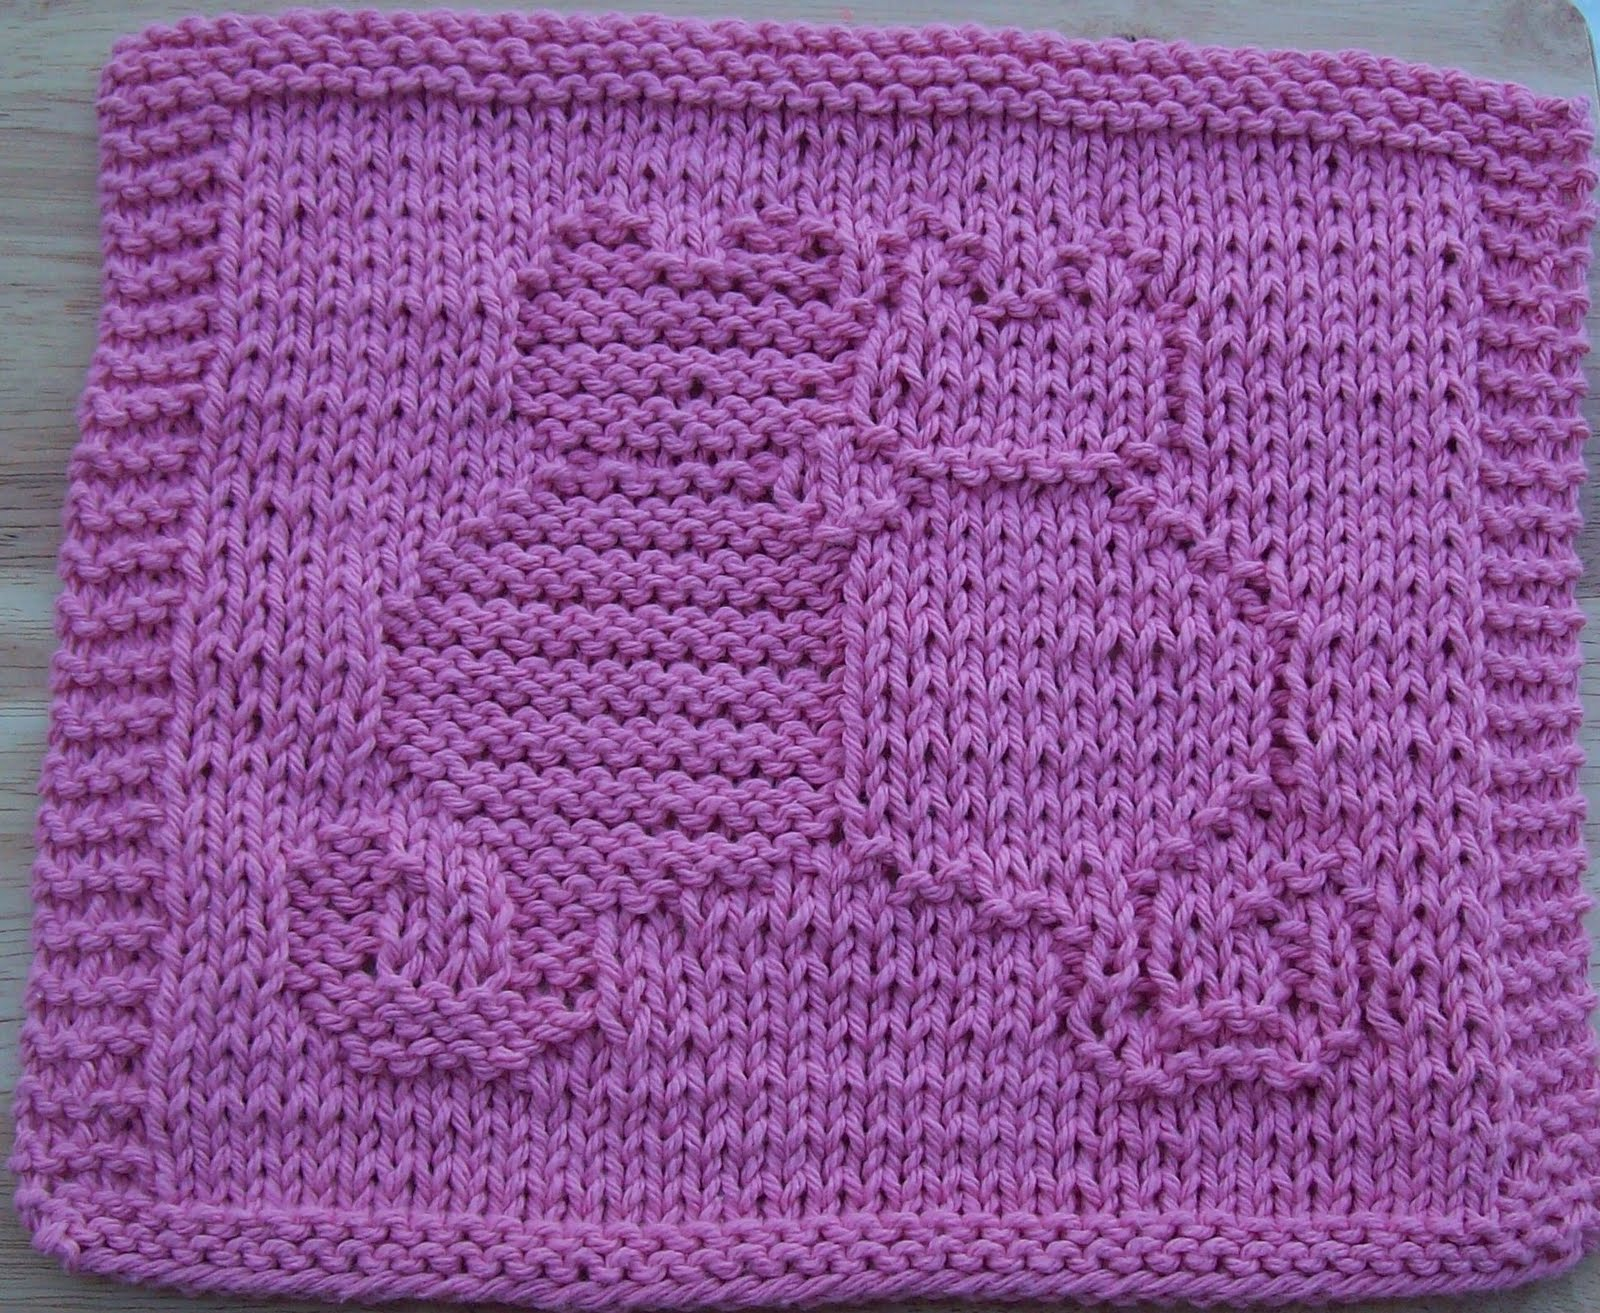 Dishcloth Knitting Pattern : DigKnitty Designs: Snuggling Cats Knit Dishcloth Pattern